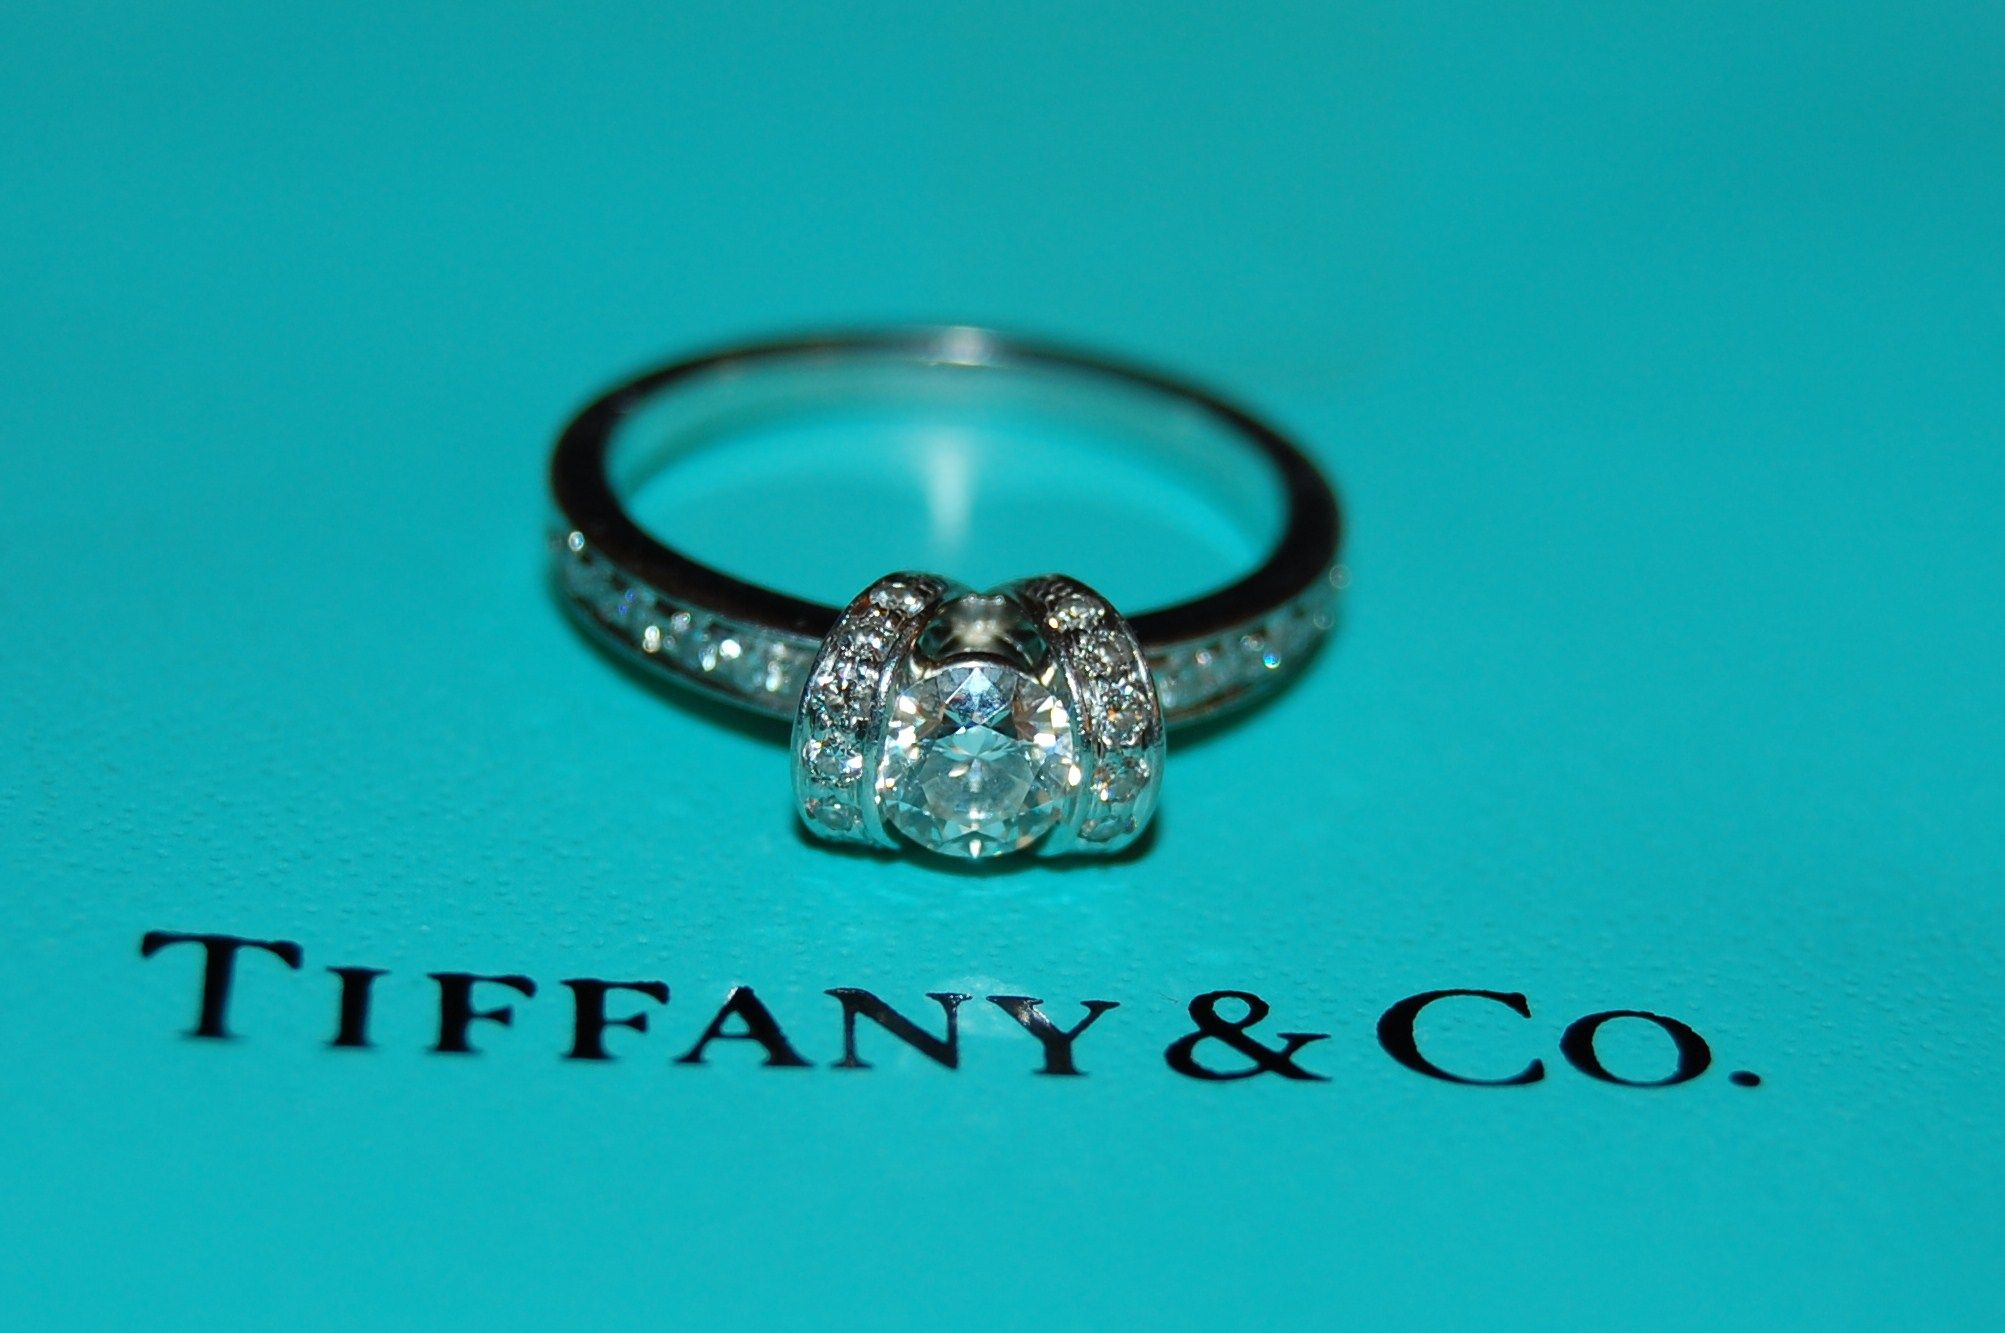 This is my (Aarin Lee Seward ) dream ring!! I spotted this